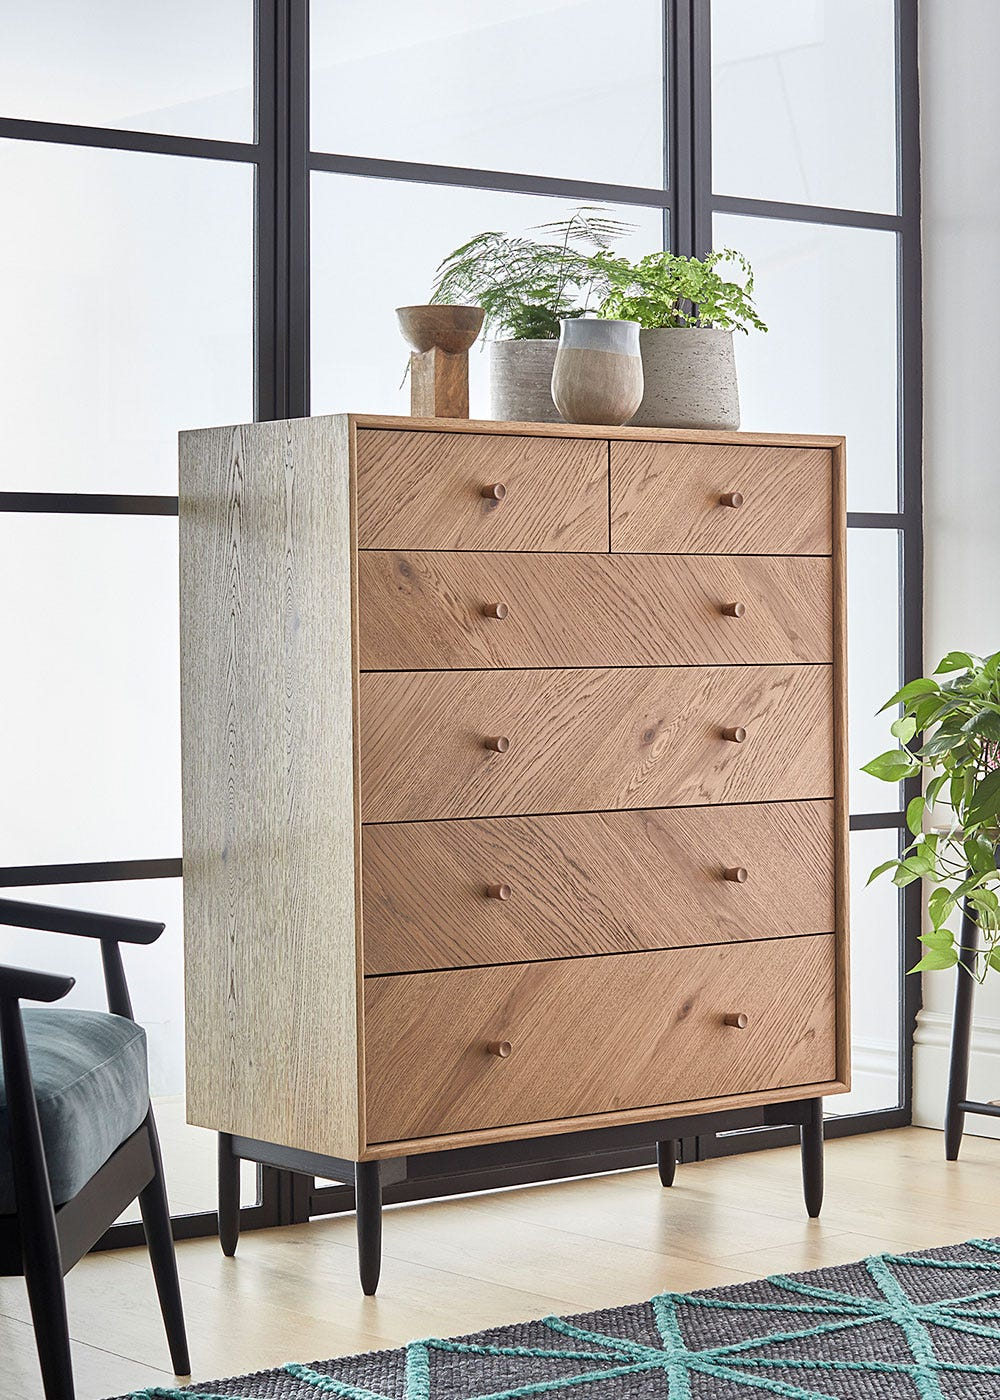 As Shown: Monza 6 drawer chest